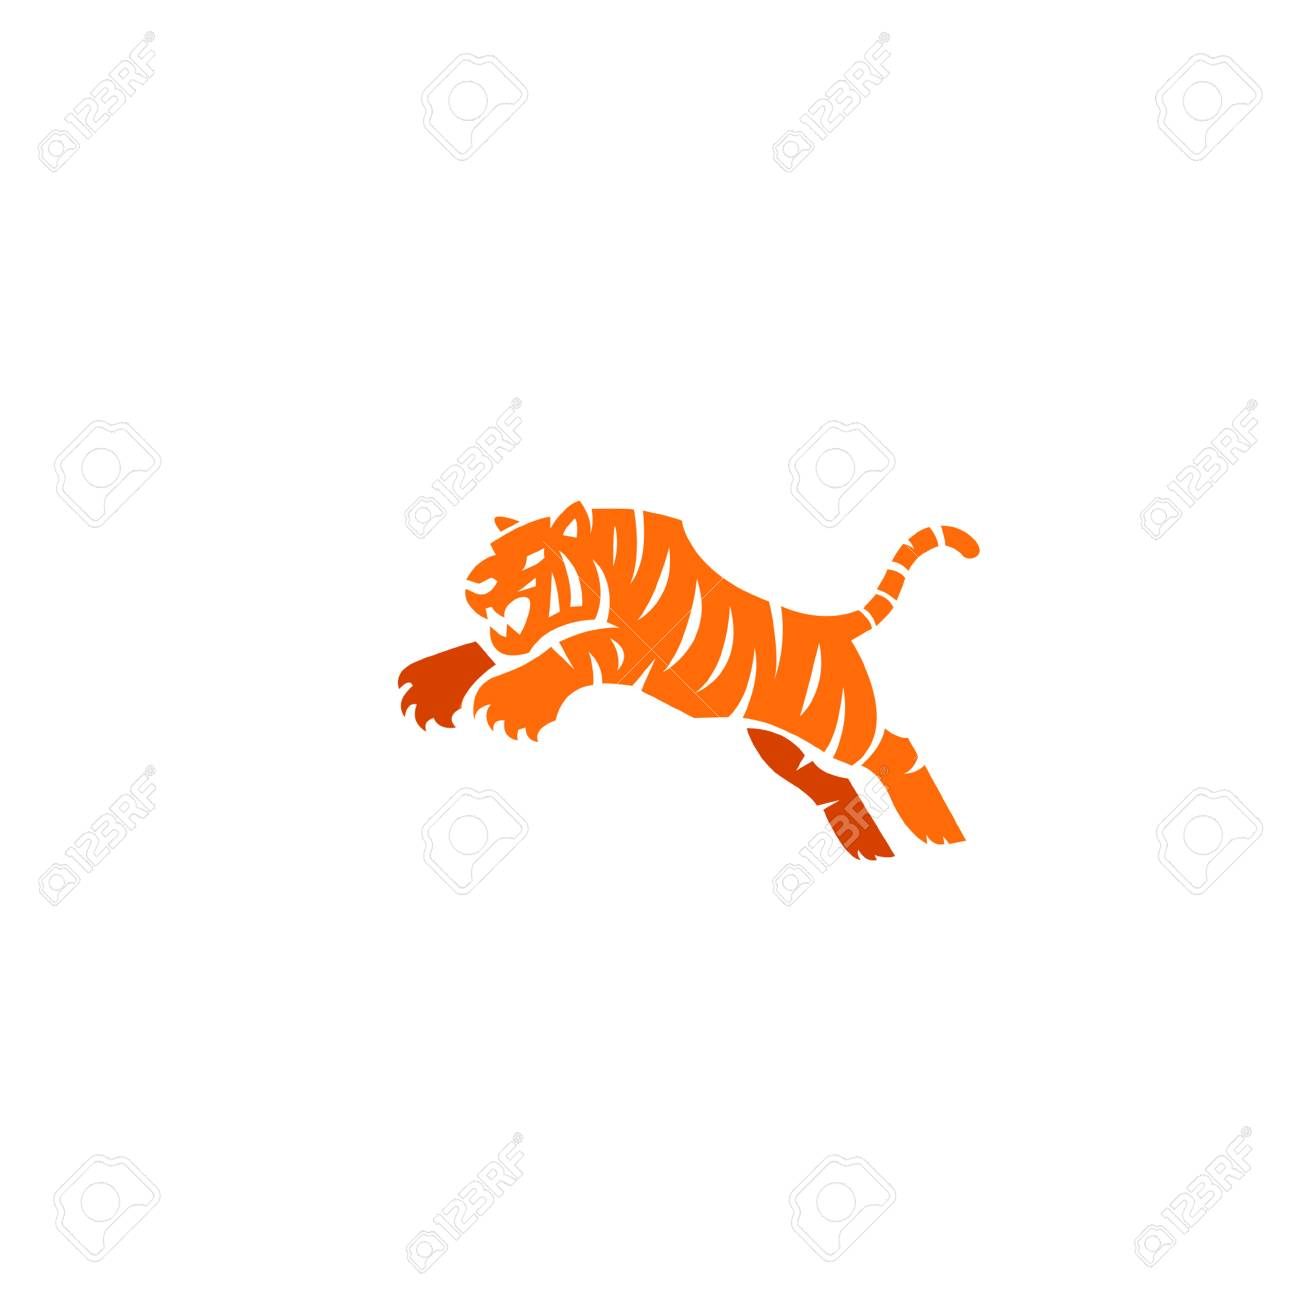 animal tiger logo icon vector illustration template vector royalty free cliparts vectors and stock illustration image 105516467 animal tiger logo icon vector illustration template vector